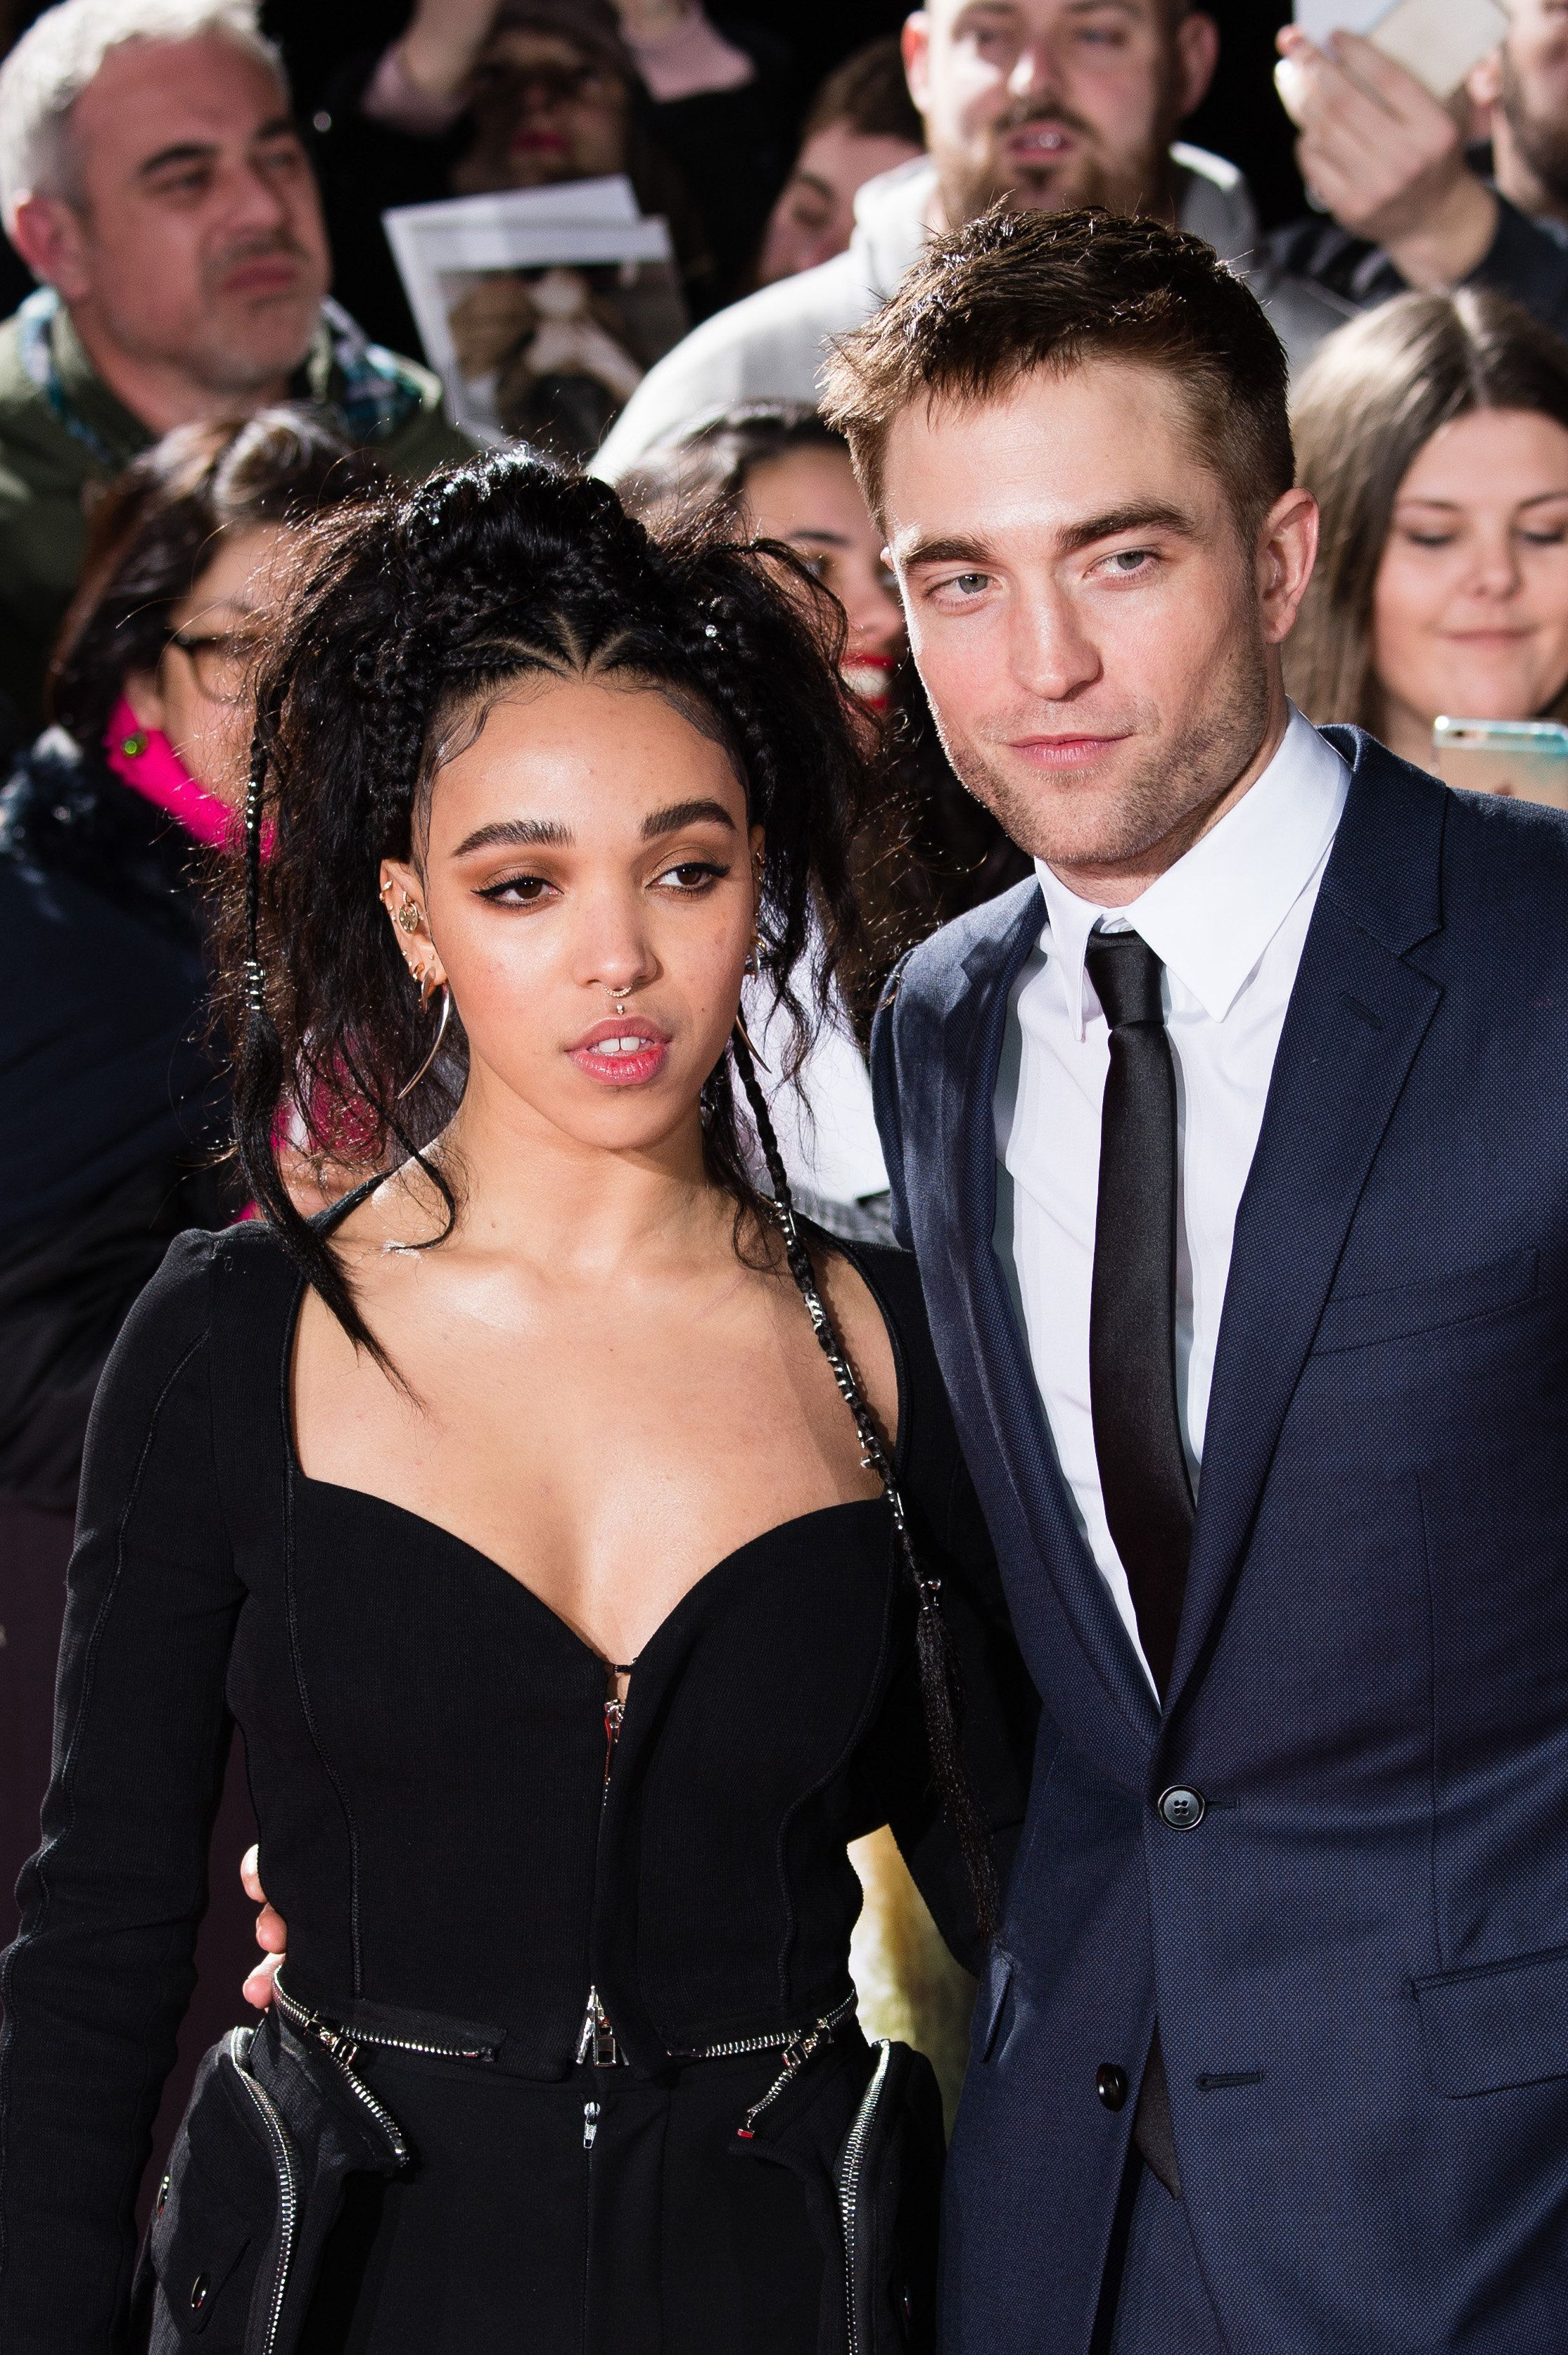 LONDON, ENGLAND - FEBRUARY 16:  (L-R) FKA Twigs and Robert Pattinson arrive at The Lost City of Z UK premiere at The British Museum on February 16, 2017 in London, United Kingdom.  (Photo by Jeff Spicer/Getty Images)